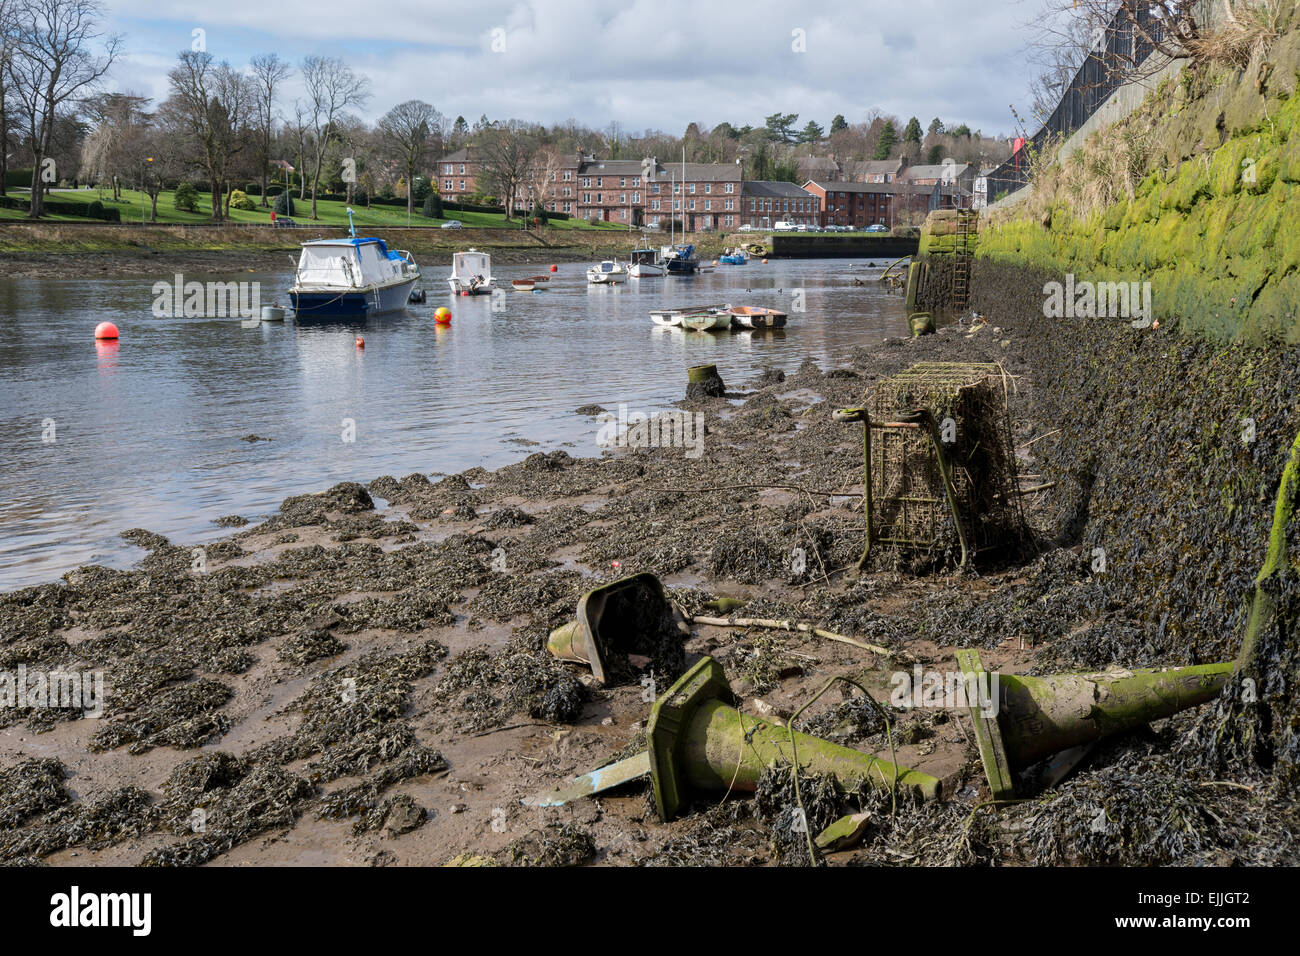 The River Leven, Dumbarton, Scotland, UK at low tide revealing old traffic cones and debris filled shopping trolley. - Stock Image